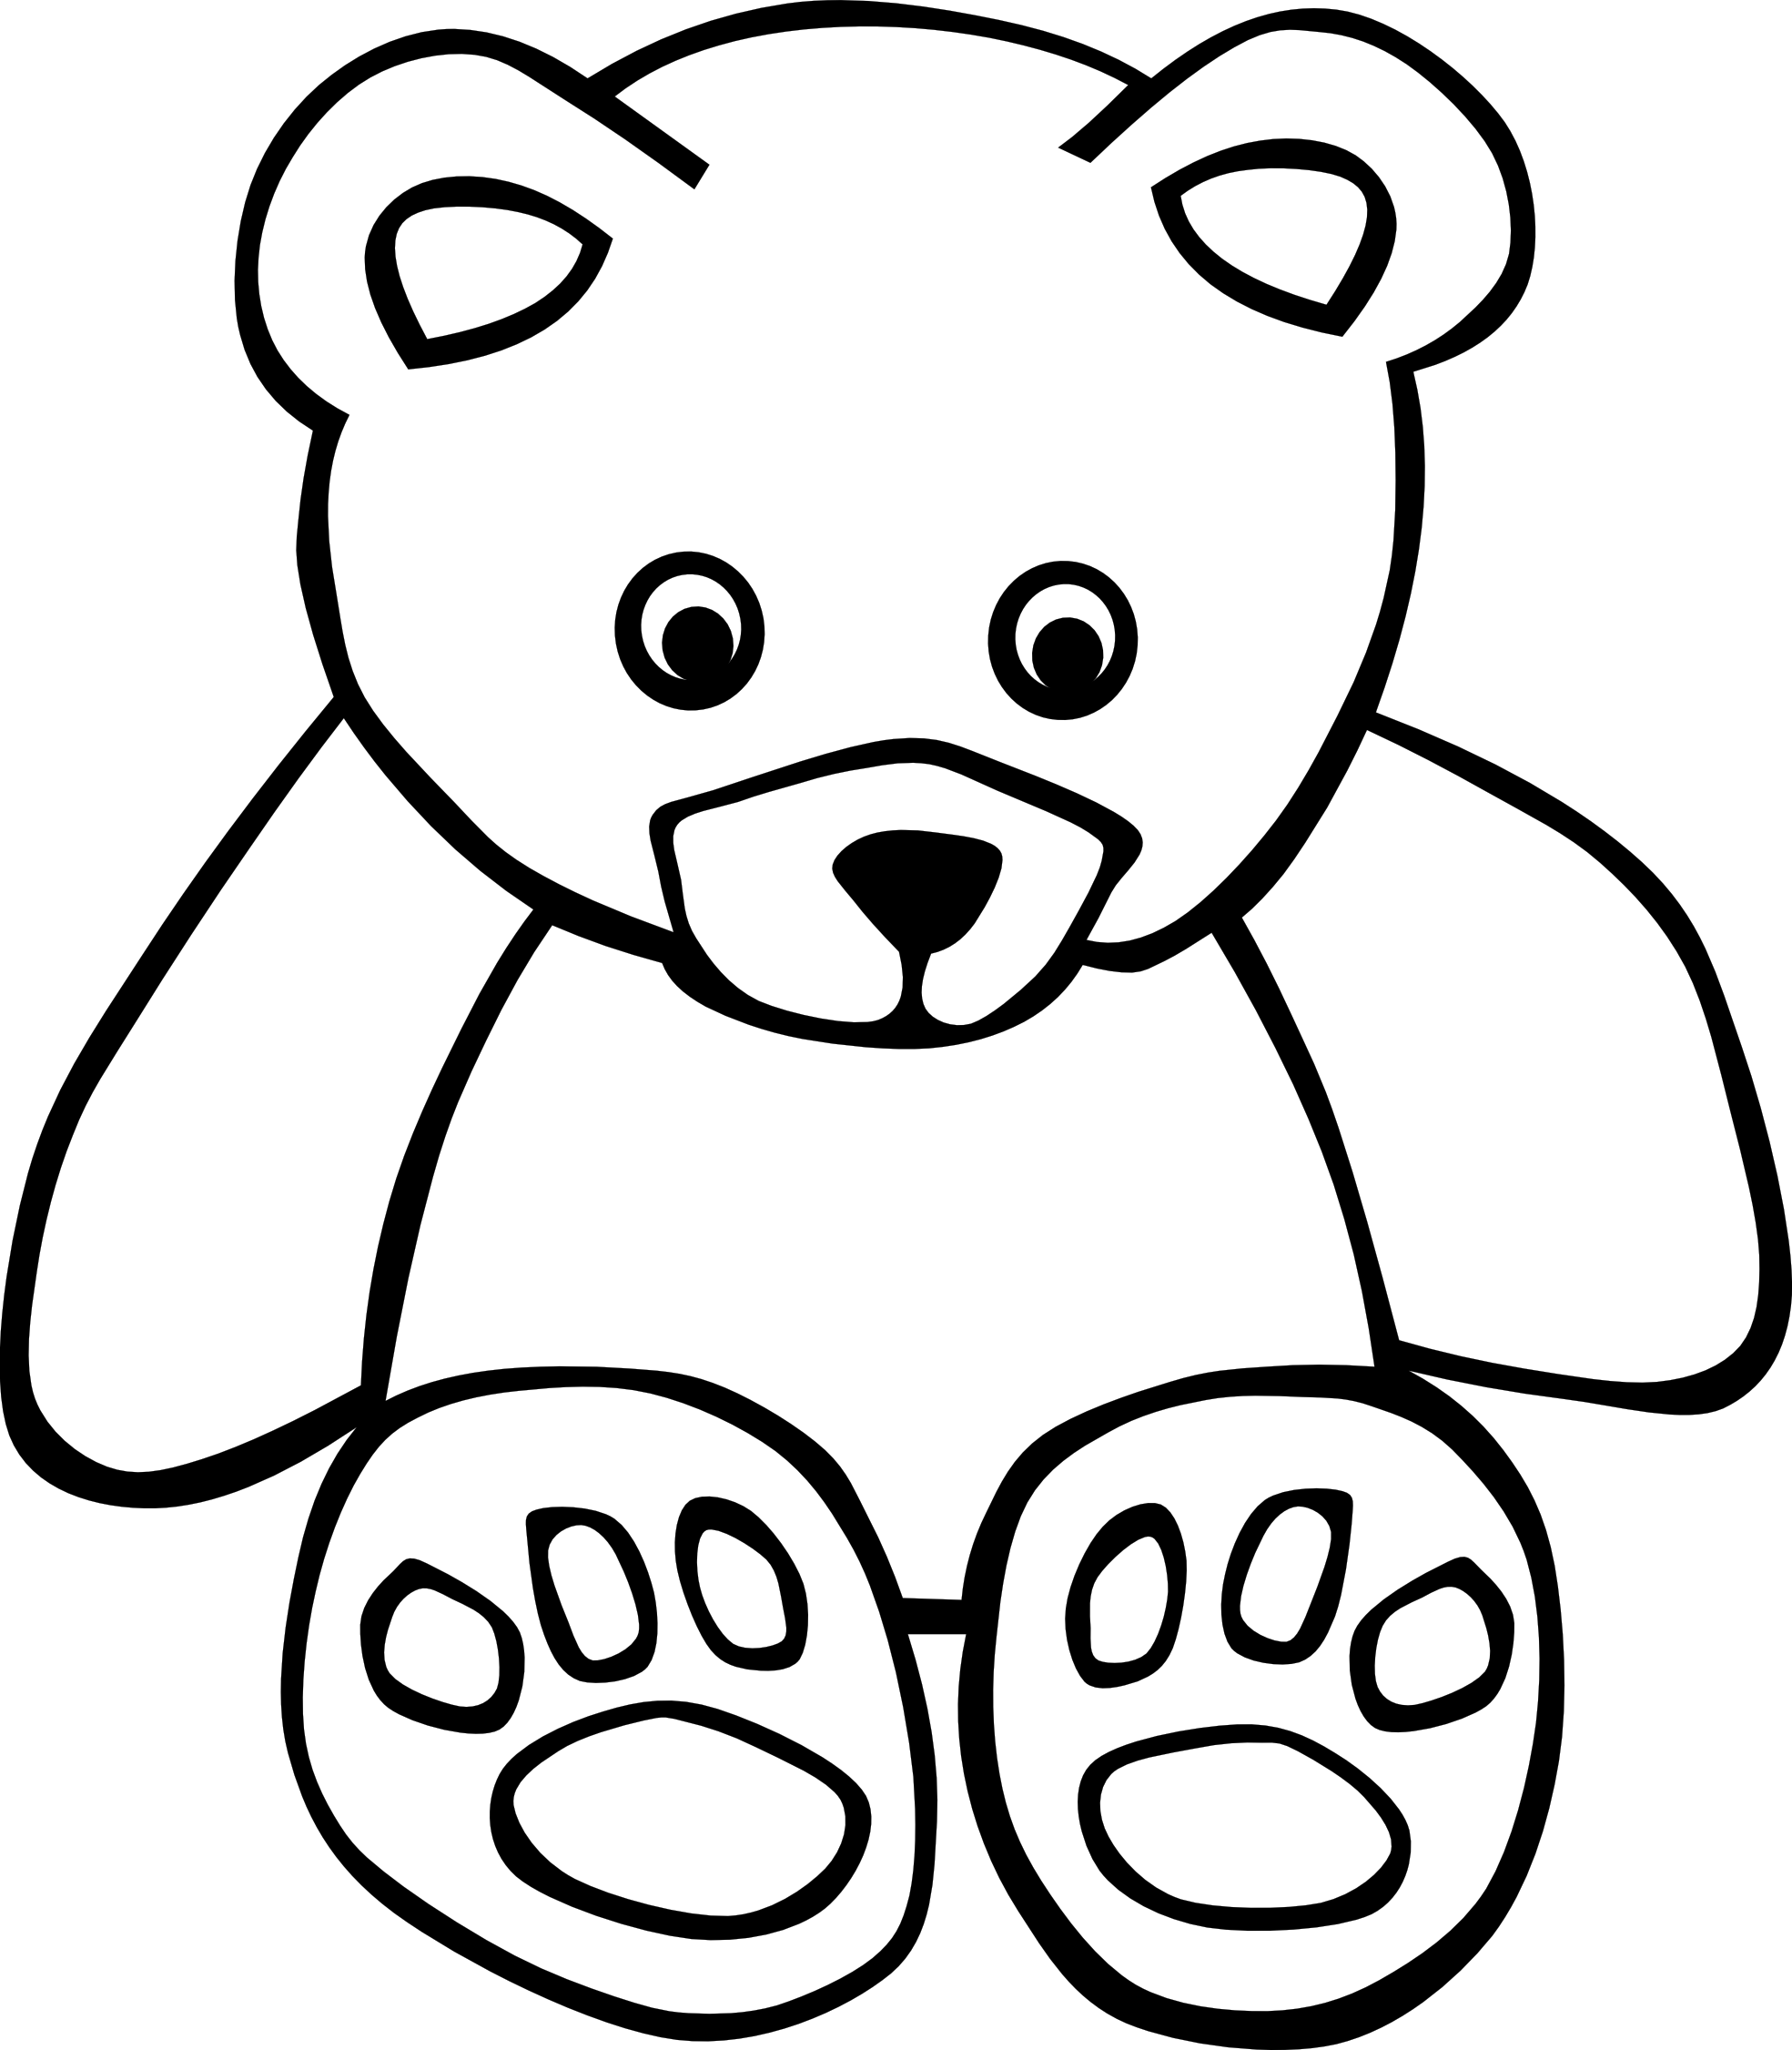 Line Drawing Teddy Bear : Teddy bear line drawing clipart best